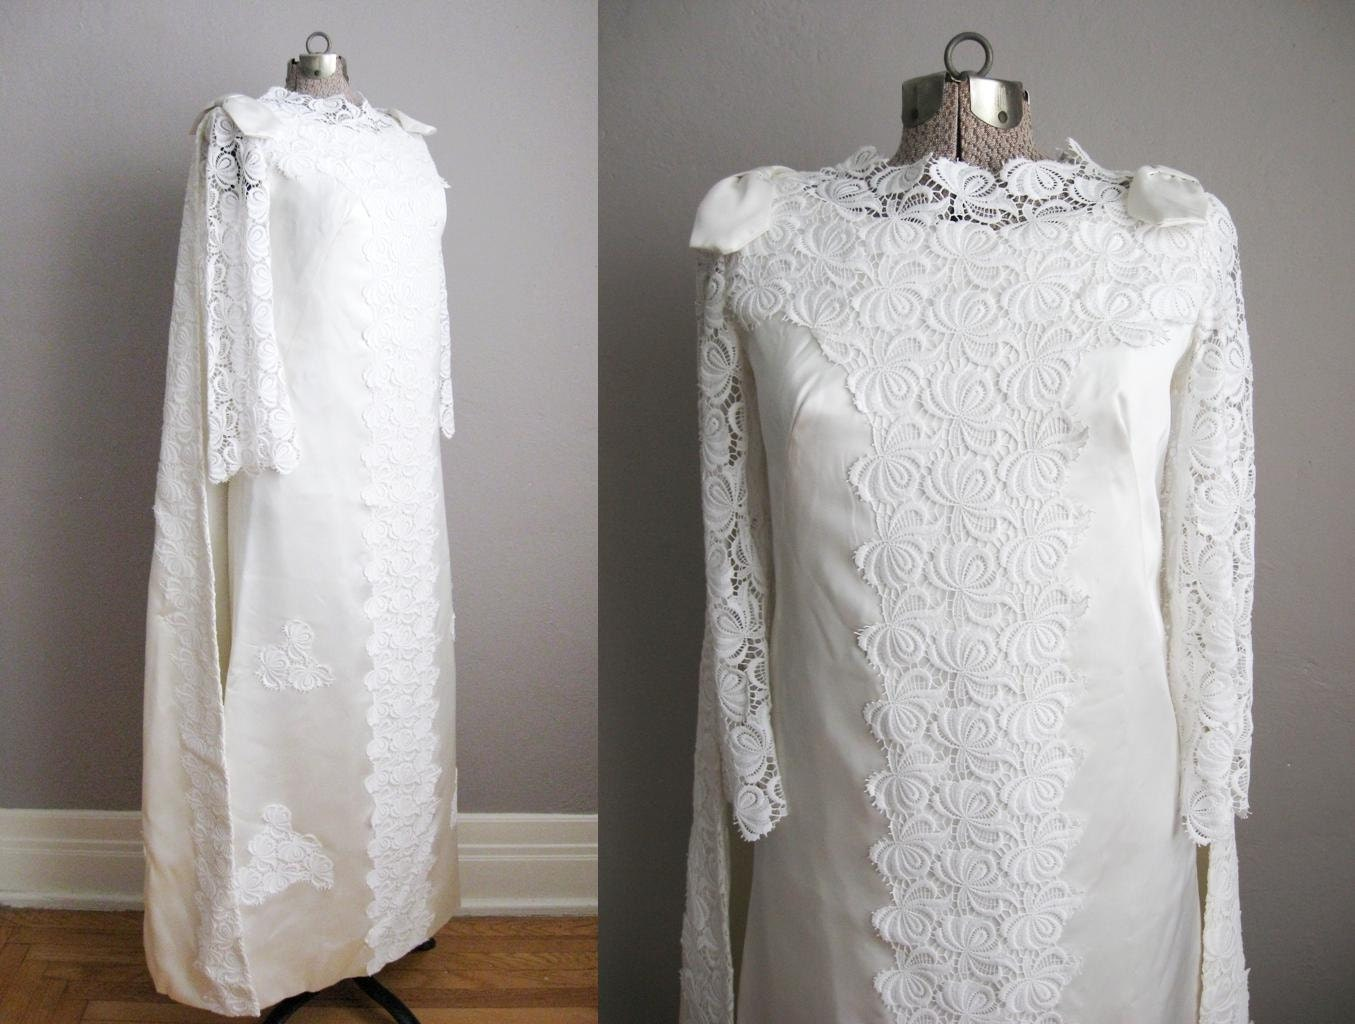 Wedding Gown With Cape: 1960s Vintage Wedding Gown Watteau Cape / White Satin Lace